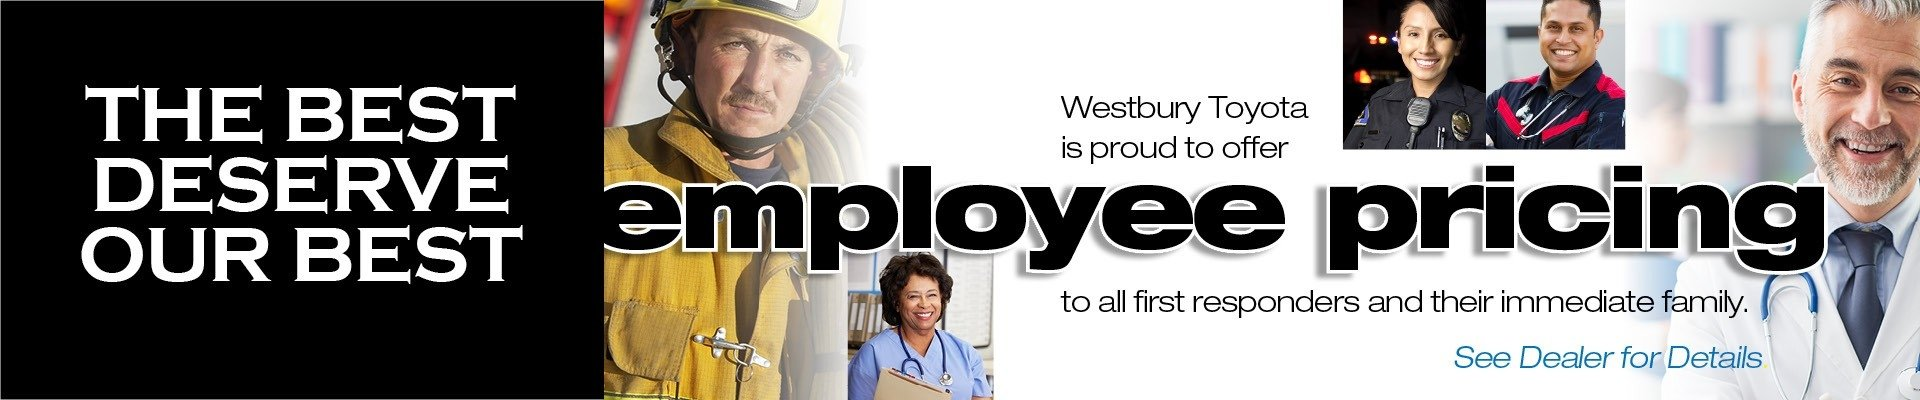 Employee Pricing for All First Responders and Immediate family